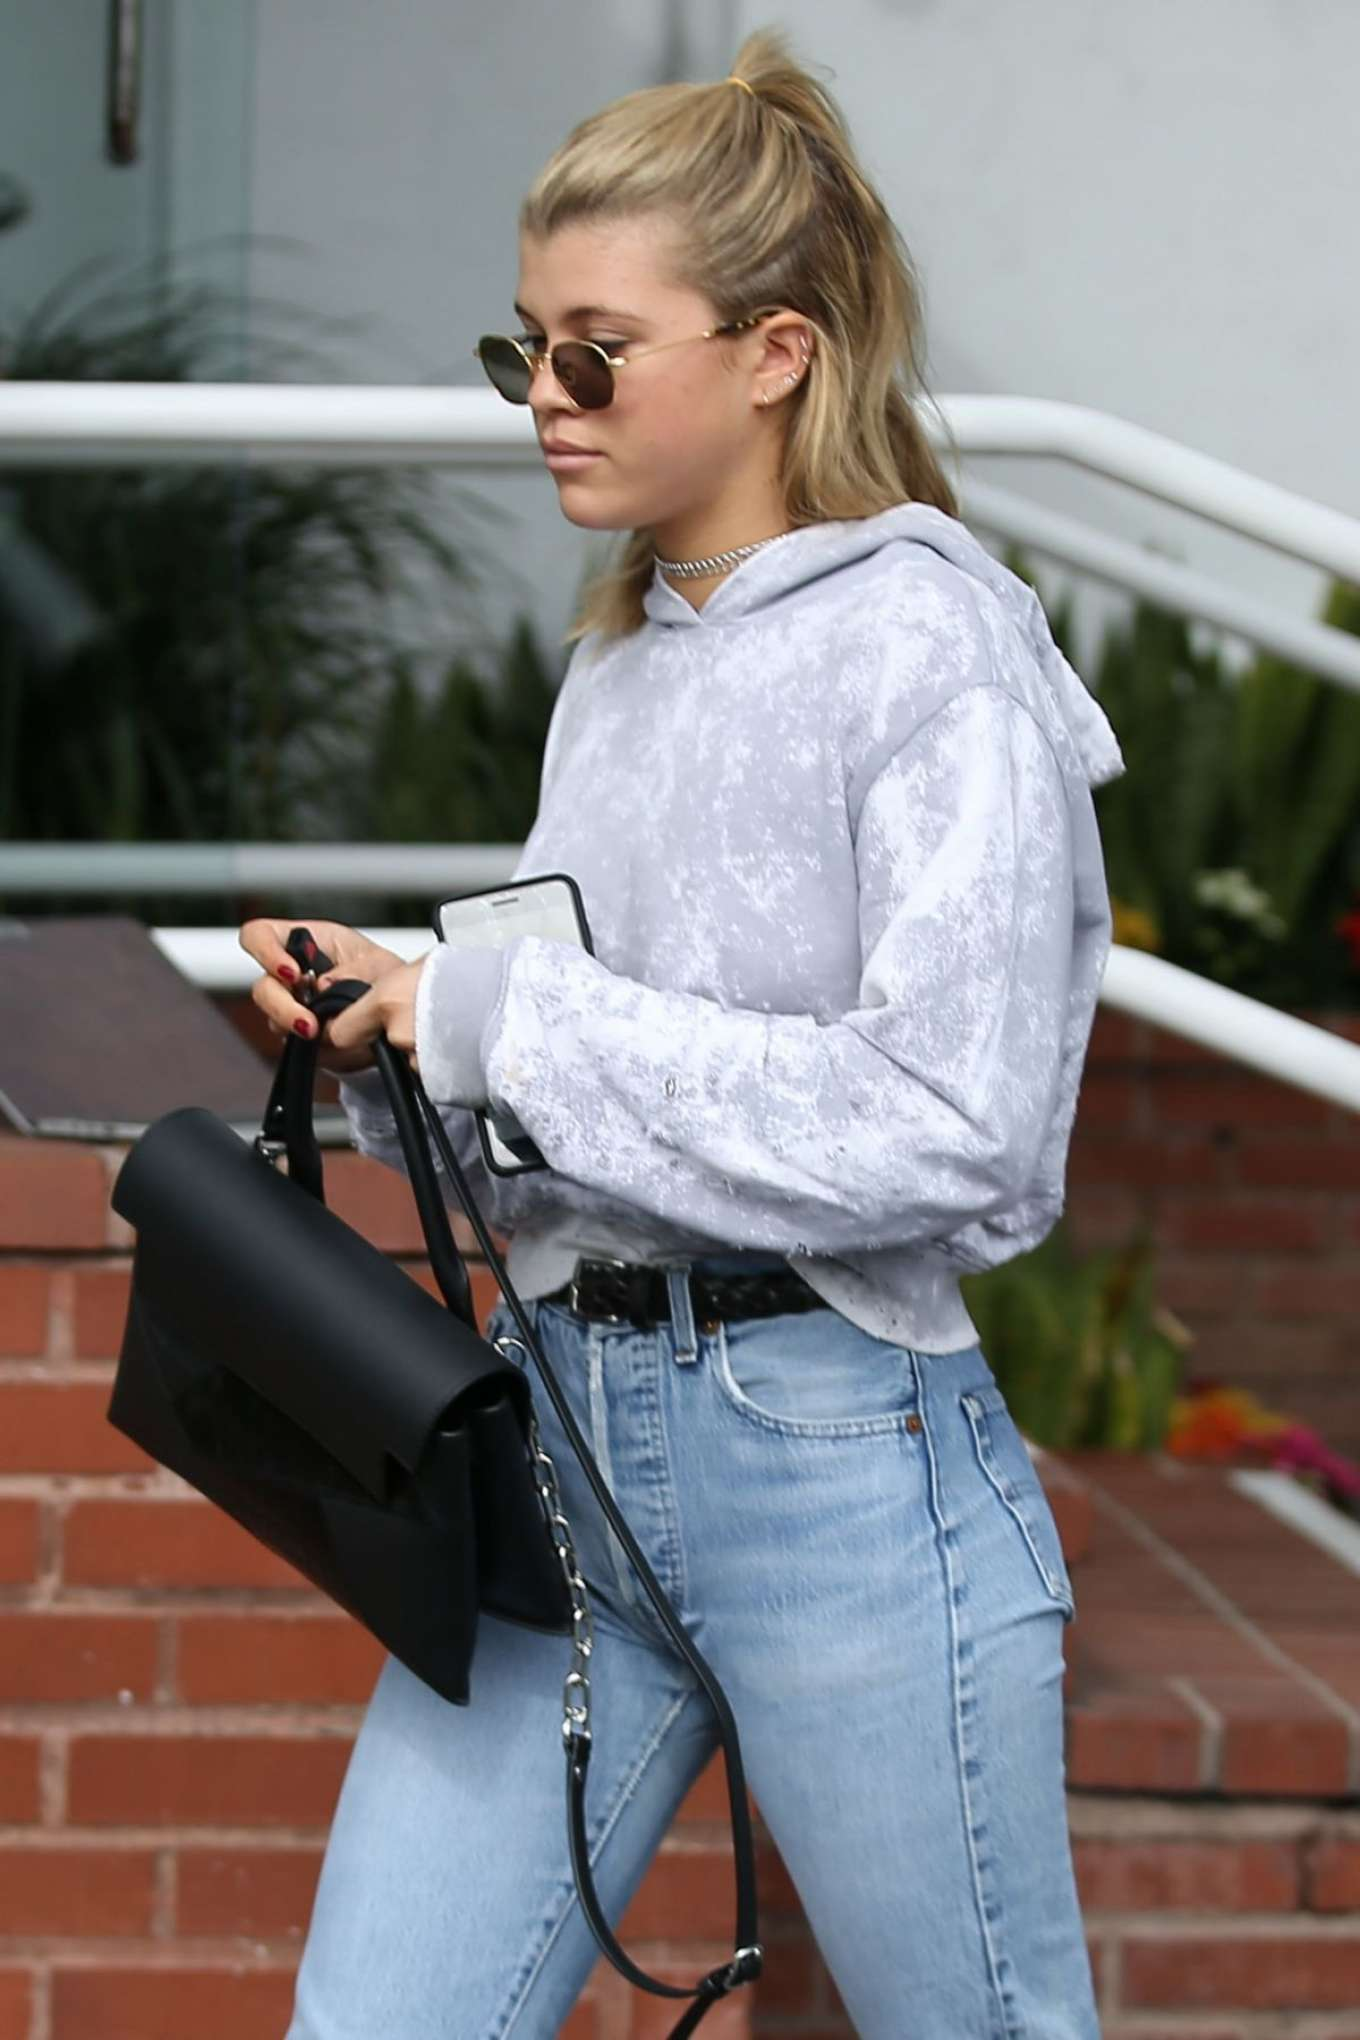 Sofia Richie 2017 : Sofia Richie in Jeans Out in Los Angeles -08